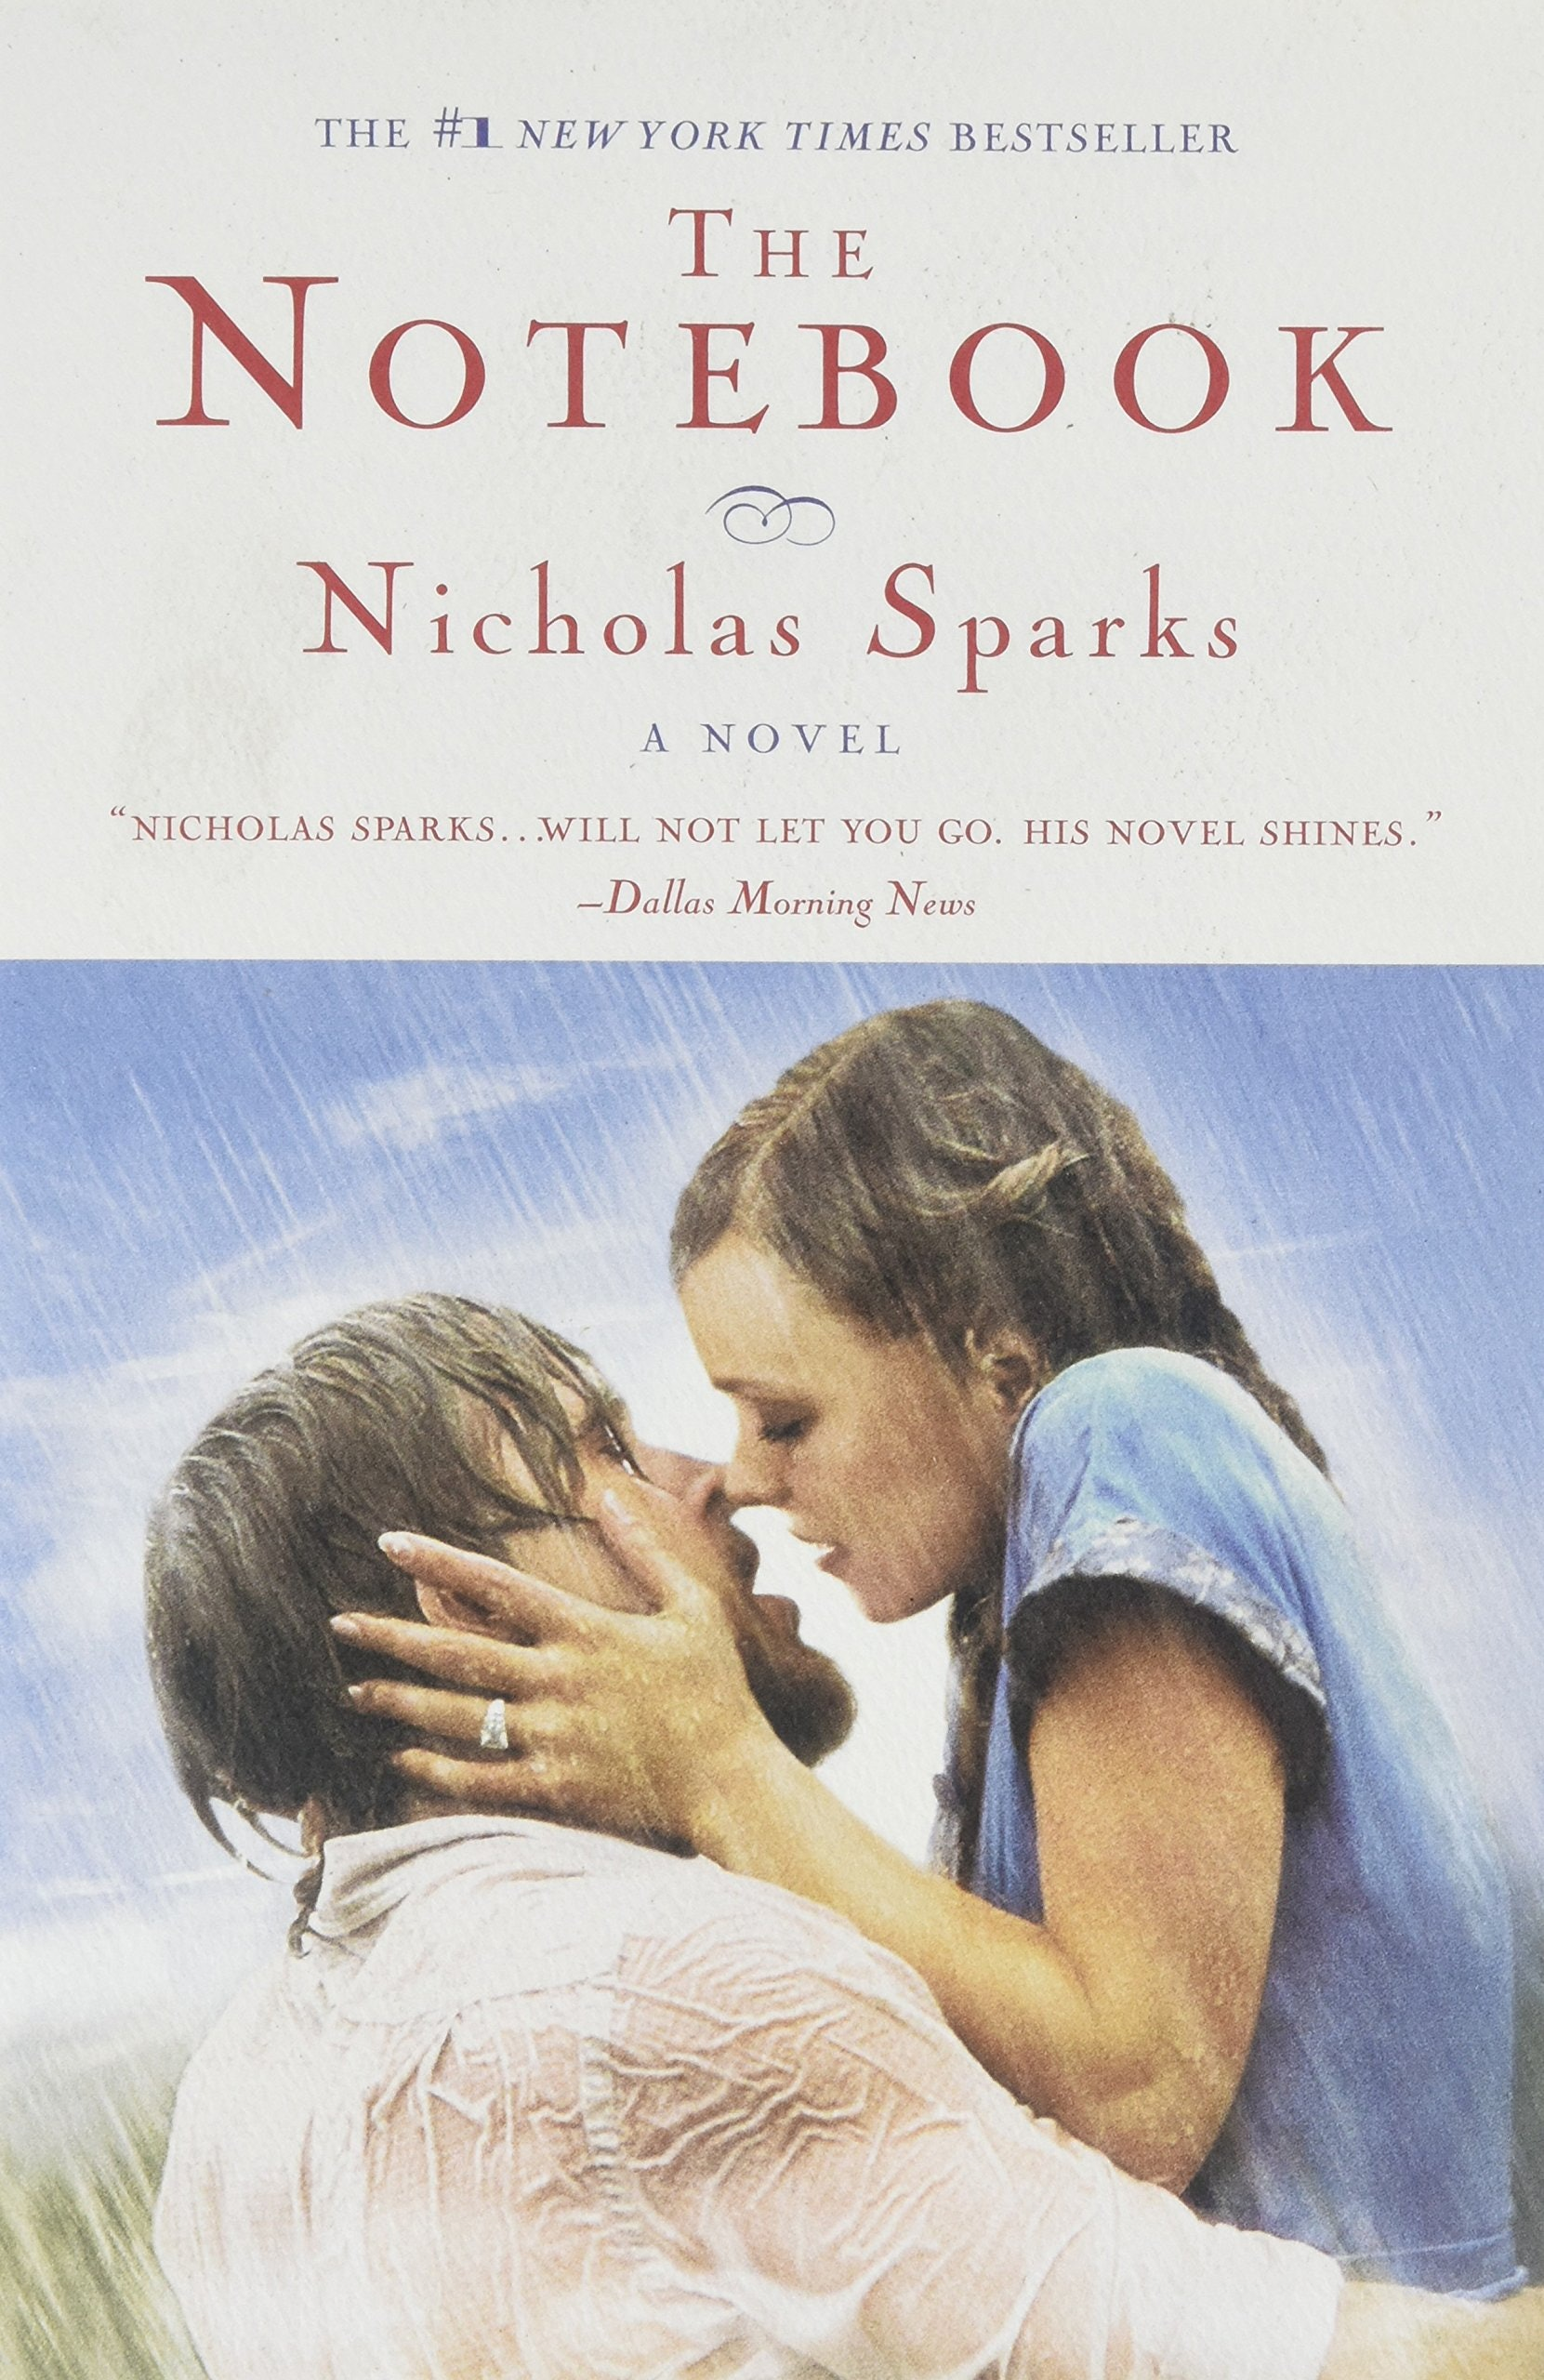 Noah From 'The Notebook' Is Actually Really Toxic — But The Movie